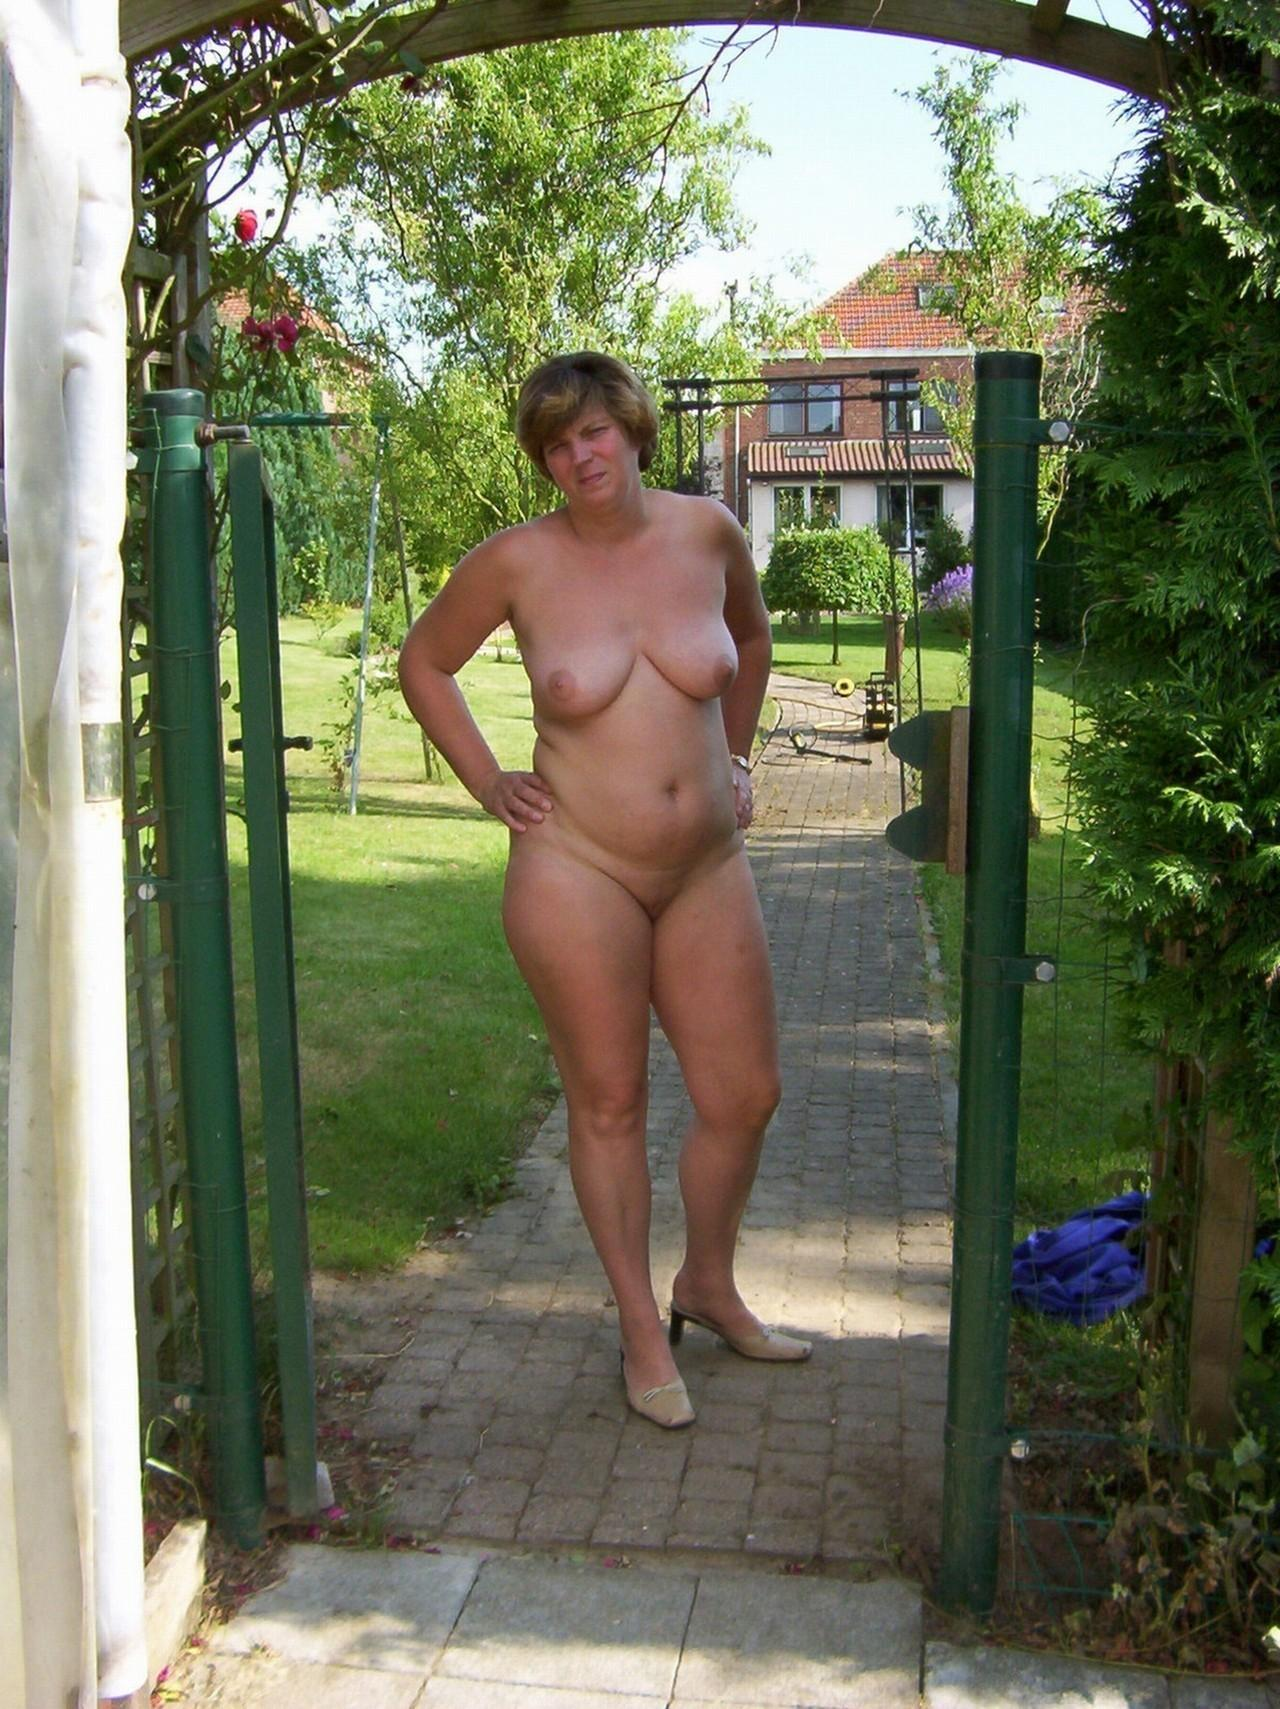 Seductive MILF lady with natural tits stripping in outdoor at the gate. Nude chubby cutie babe shakes her boobs and twat in the back yard